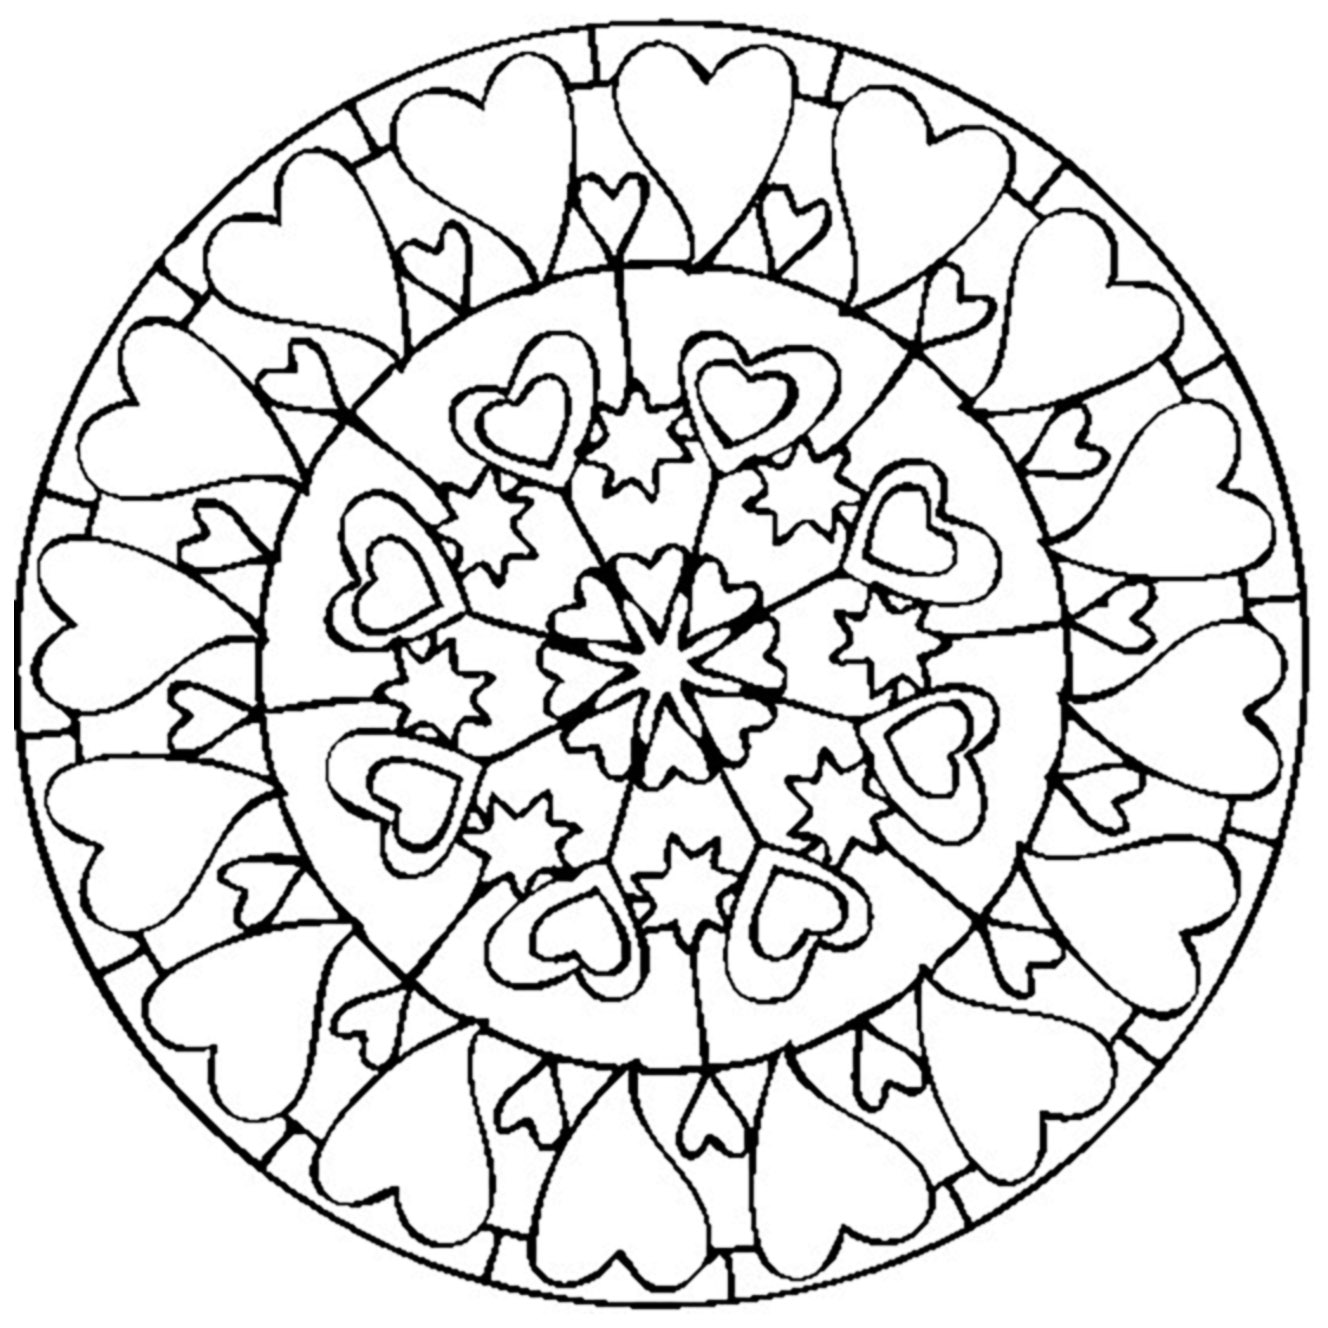 The Love Mandala ! Perfect for Valentine's Day